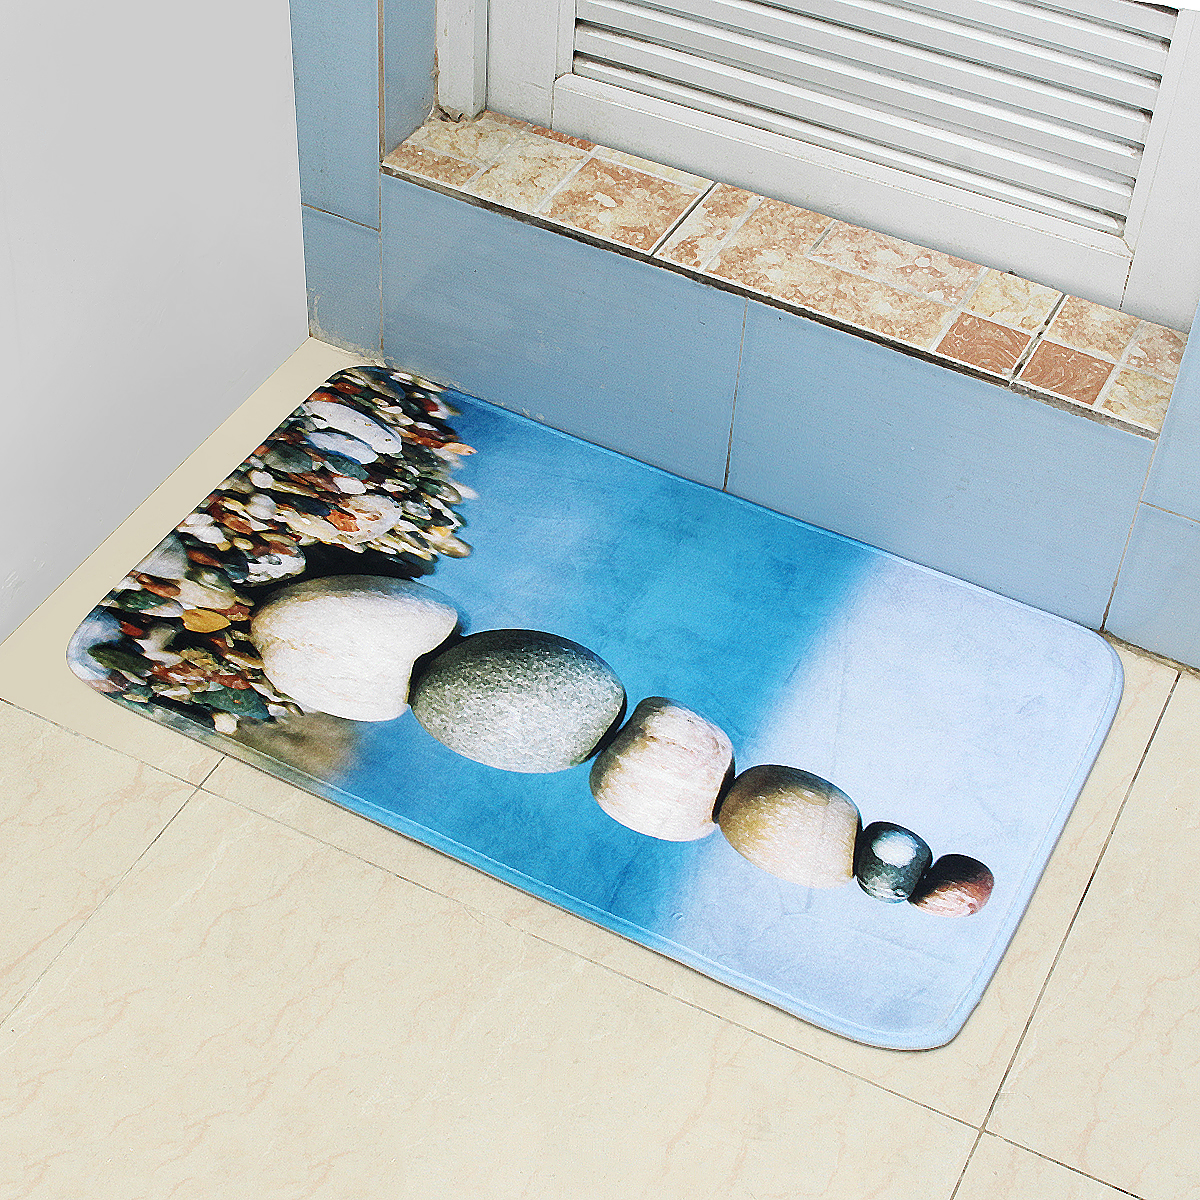 45*75cm Bathroom Shower Bath Mat Non Slip Back Carpet Mat Toilet Rug Stone Design